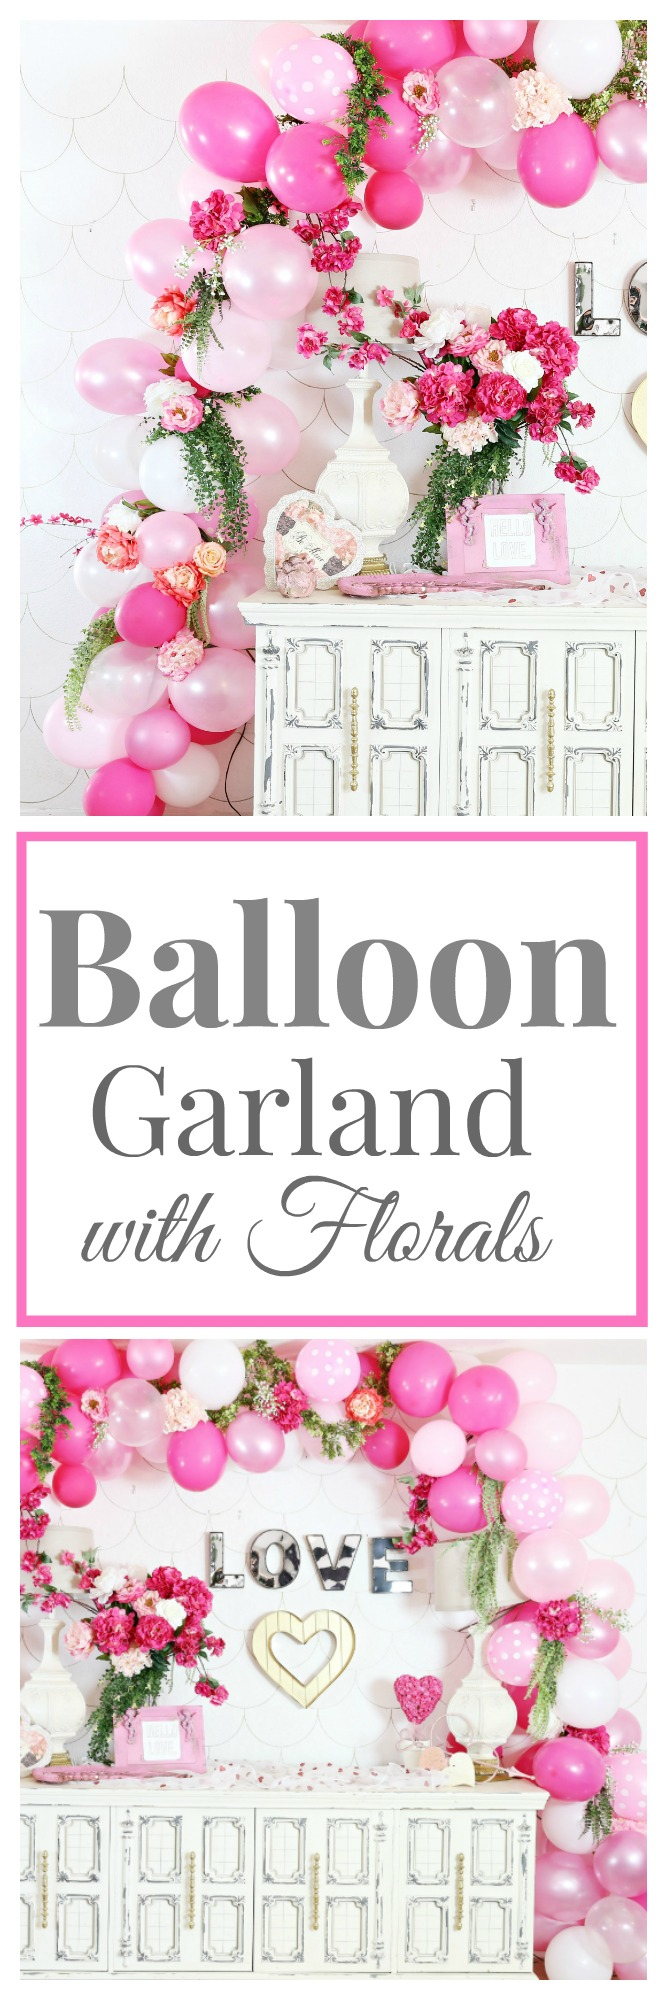 Diy Balloon Garland With Florals Awesome Party Decor Classy Clutter